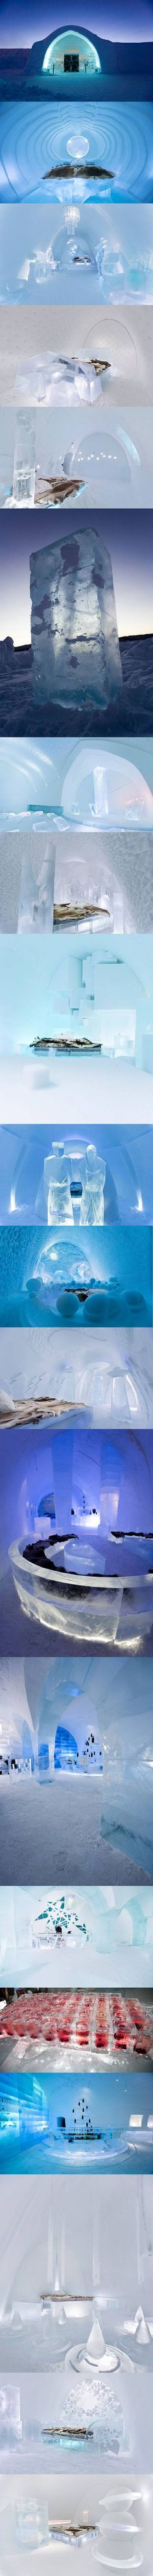 Every winter, artists from around the world gather in Jukkasjärvi, northern Sweden, for an art project that has become known as ICEHOTEL. It is the world's first and largest hotel built of snow and ice.--> this is amazing! Oh The Places You'll Go, Places To Travel, Places Ive Been, Ice Hotel Sweden, Ice Houses, Snow Sculptures, Lappland, Arctic Circle, Quebec City